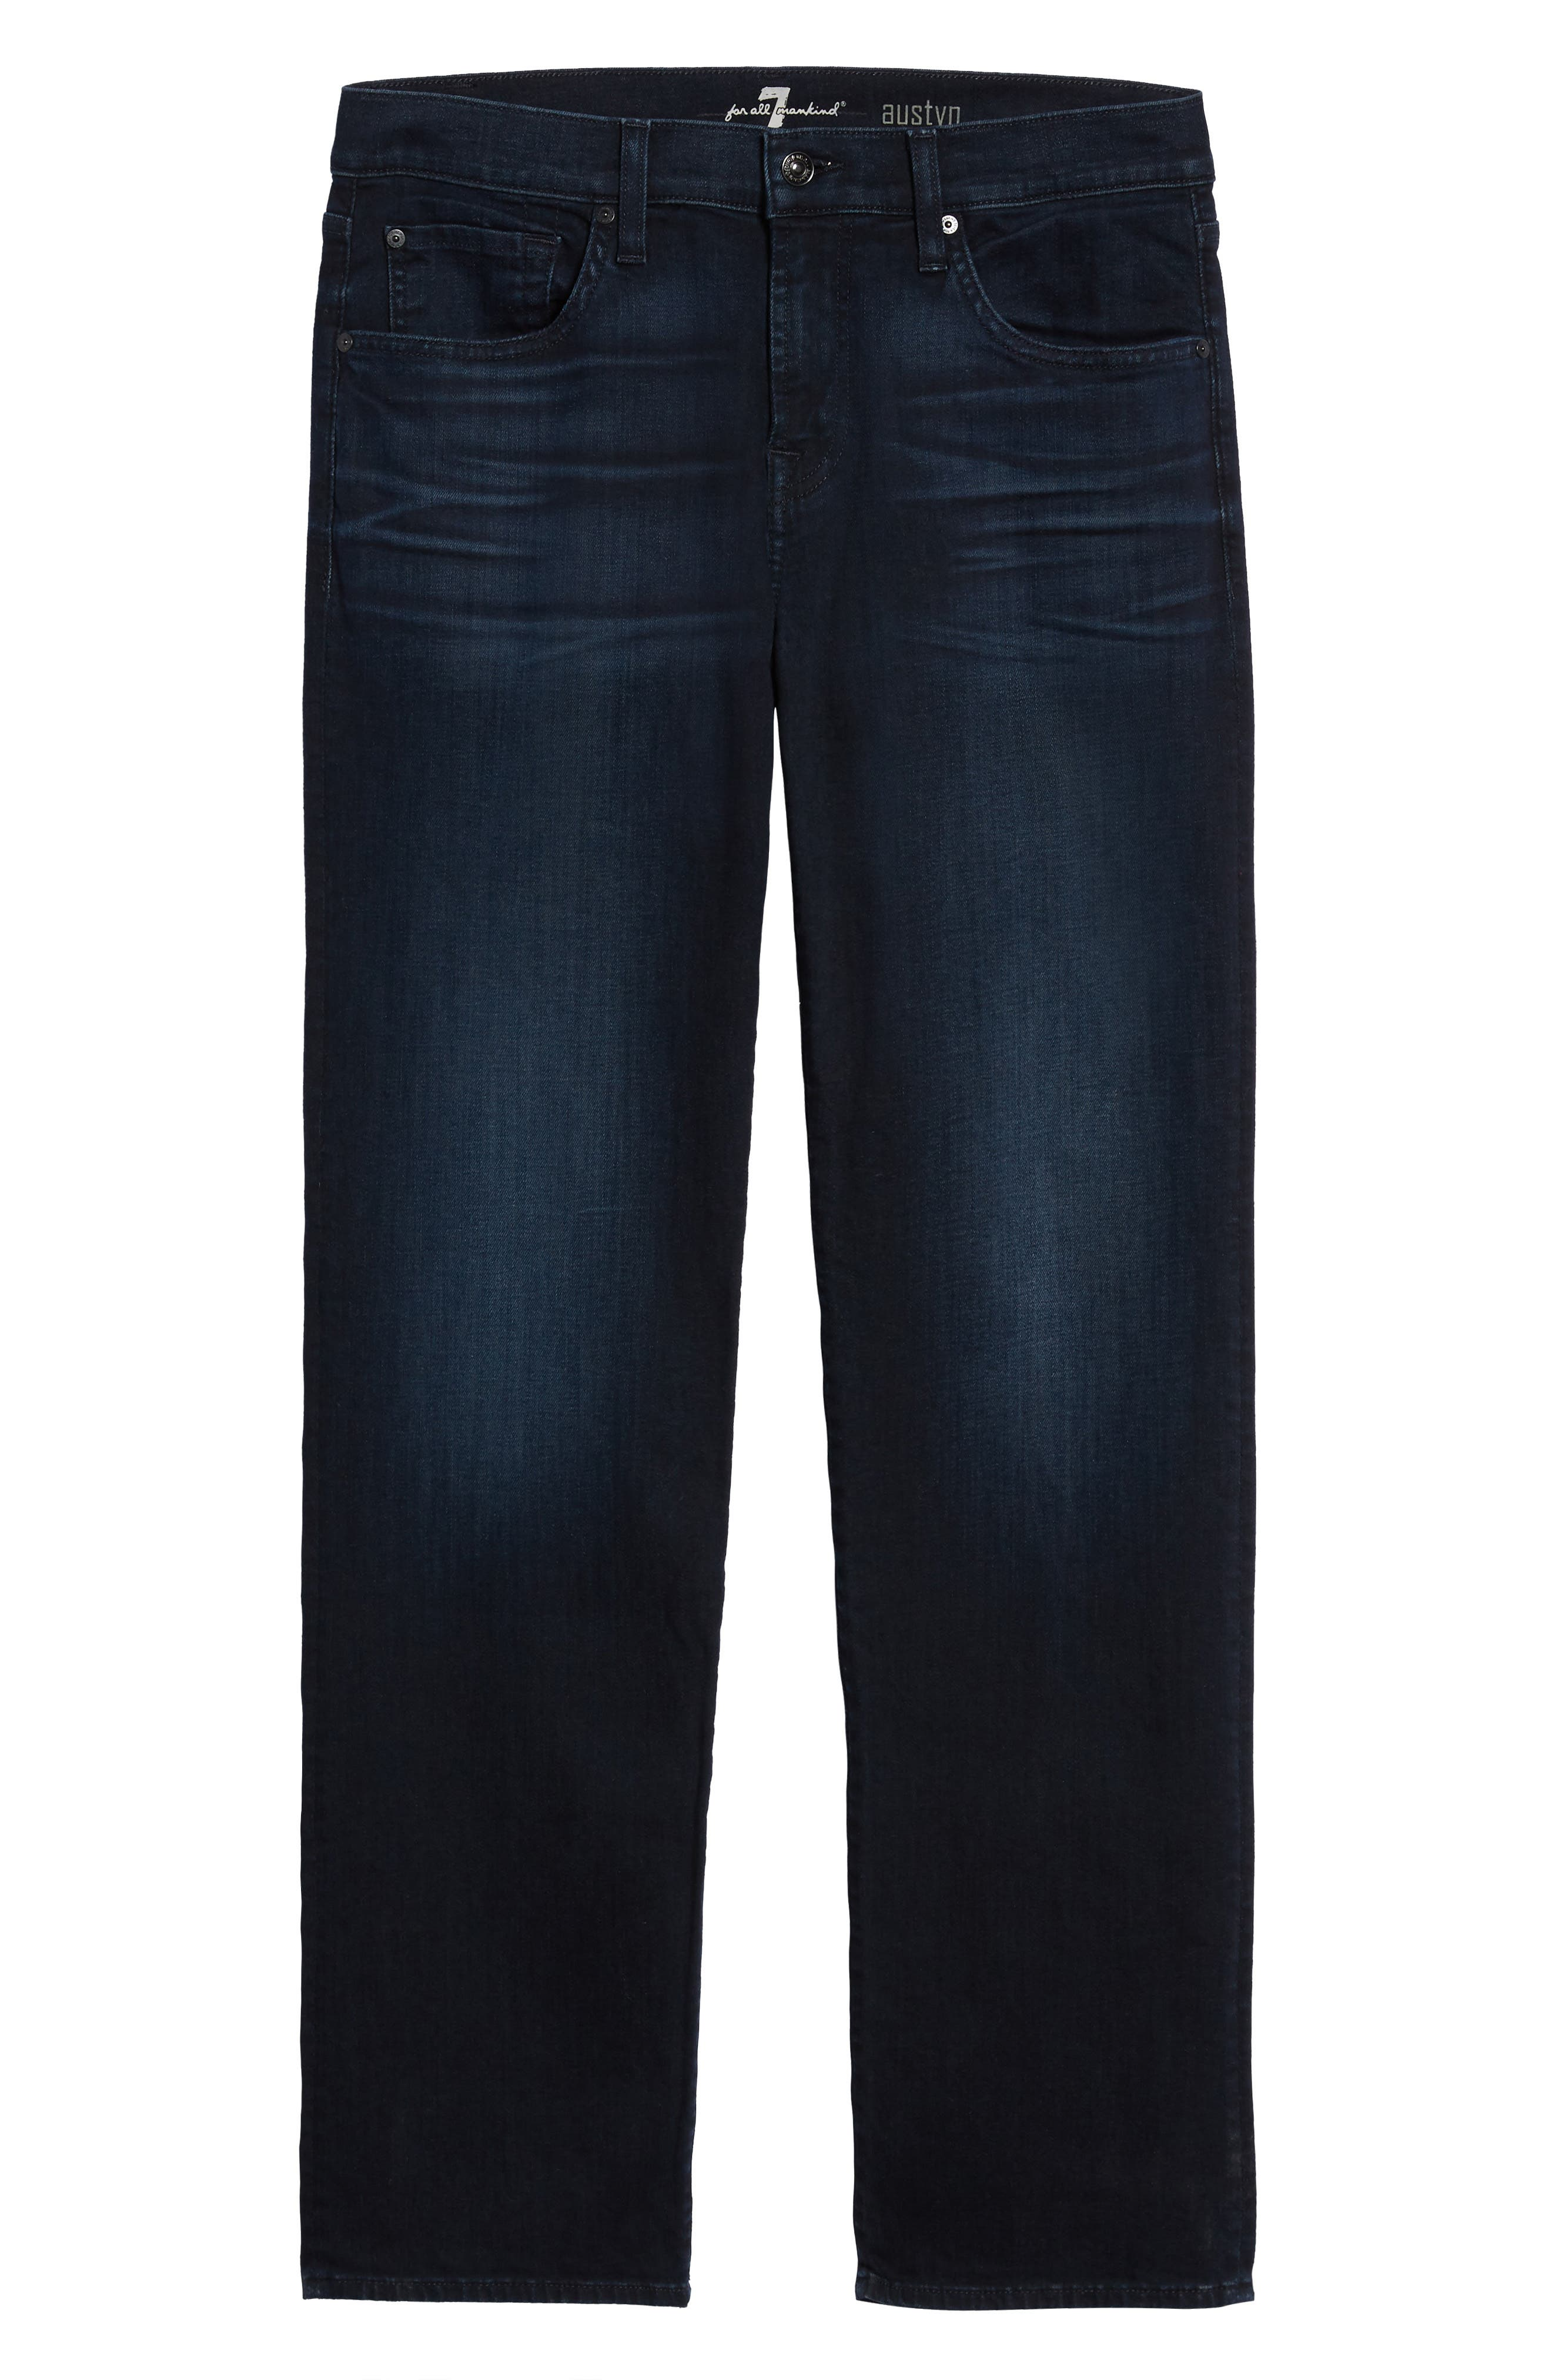 7 FOR ALL MANKIND<SUP>®</SUP>, Austyn Relaxed Fit Jeans, Alternate thumbnail 7, color, ASOTIN-ASOT